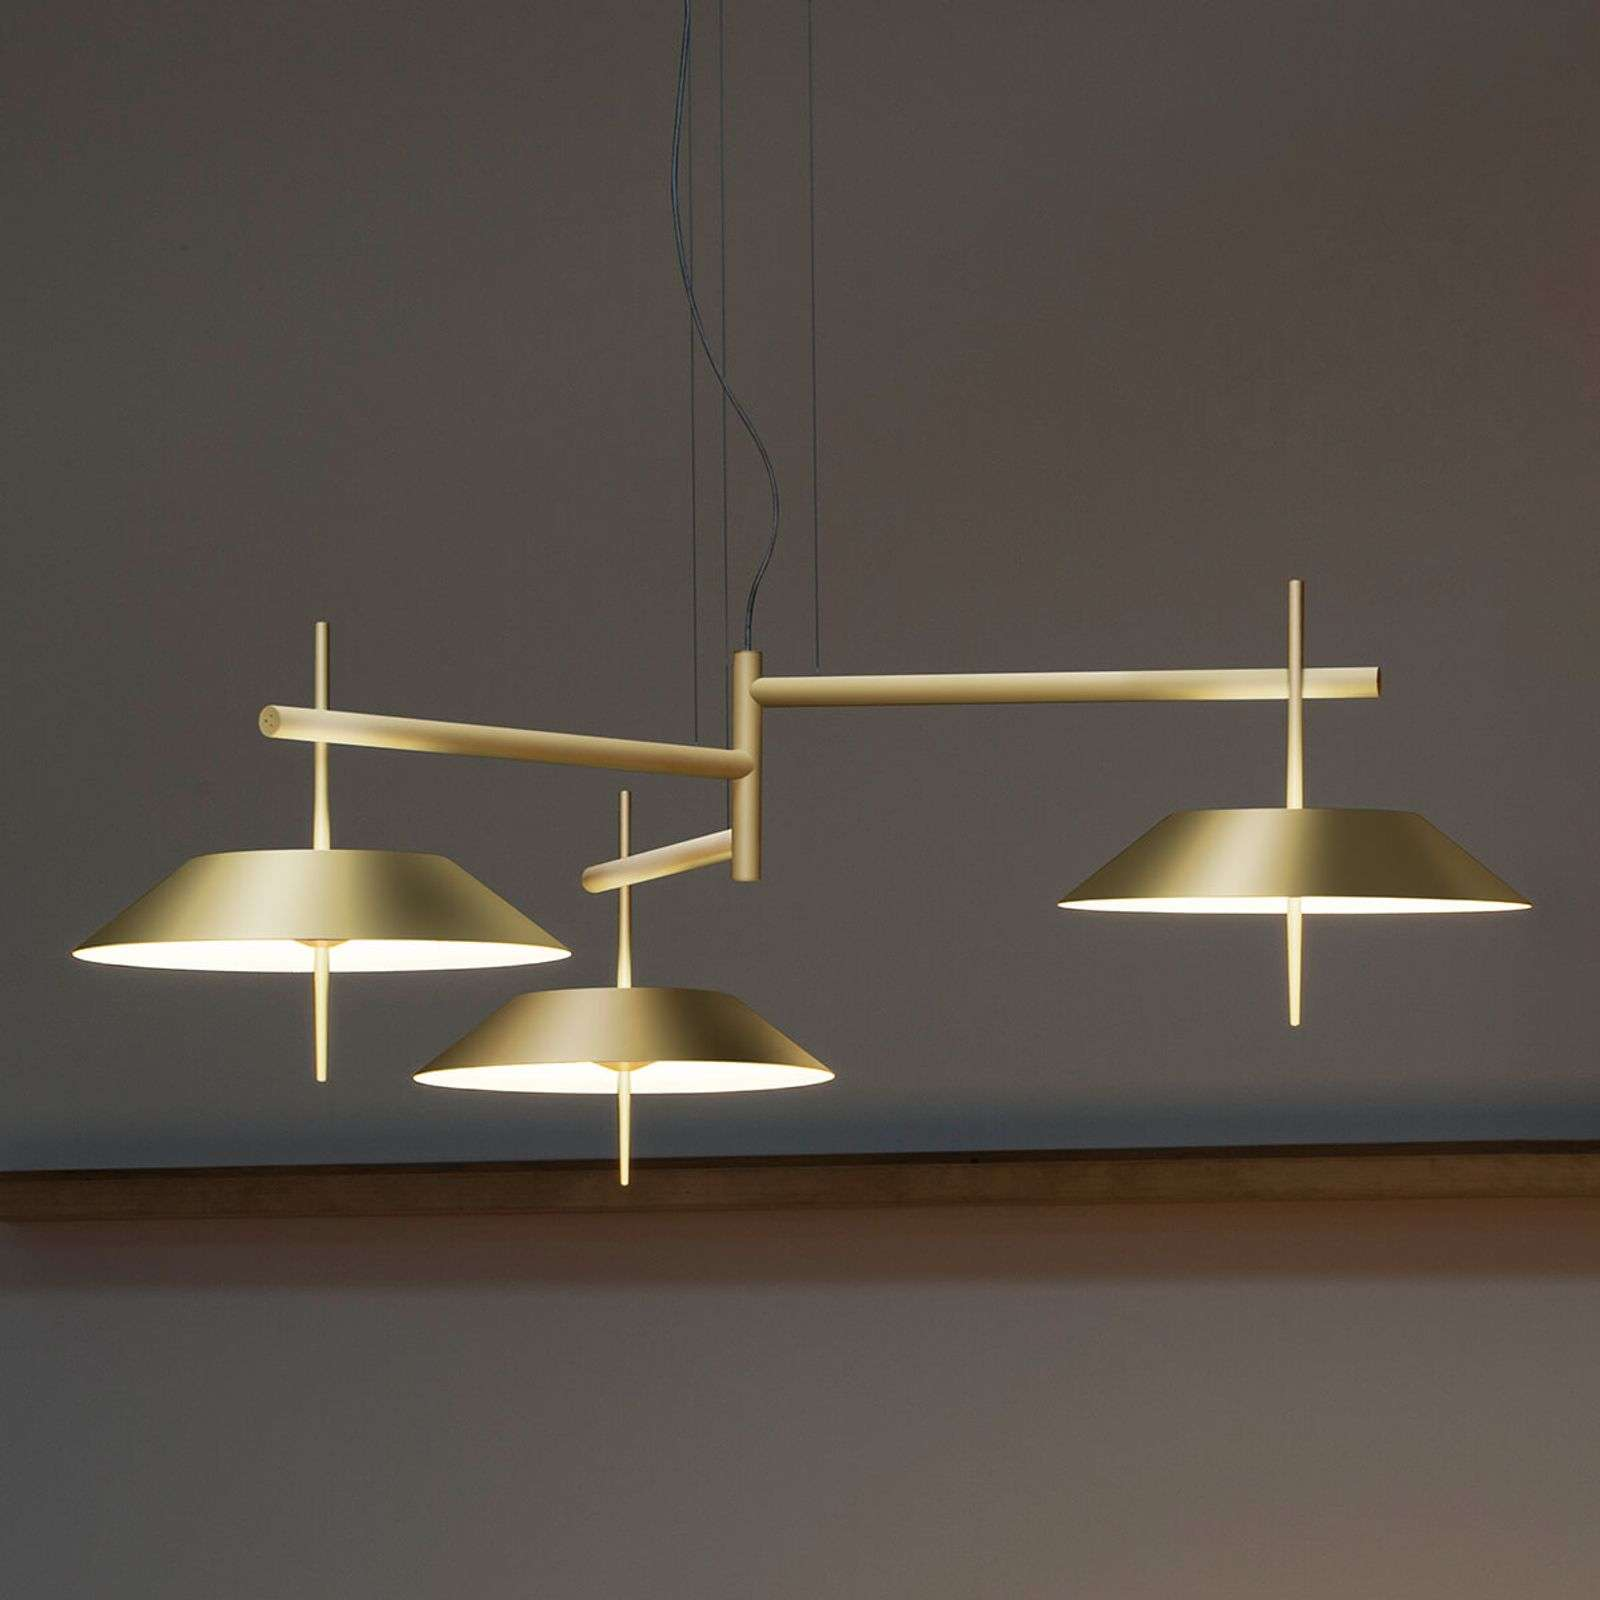 Suspension LED design Mayfair à 3 lampes